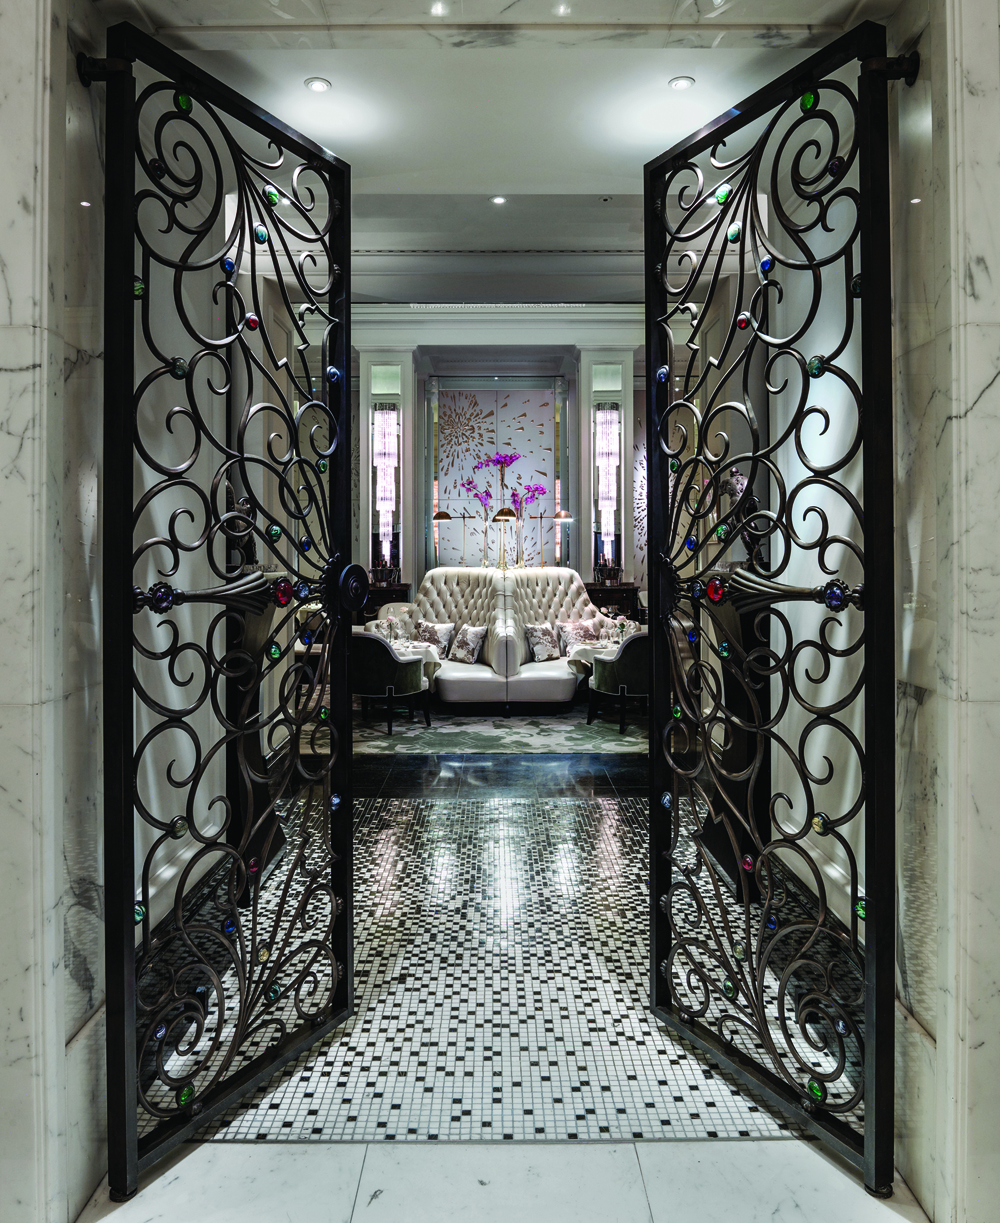 Image of Palm Court at The Langham, London